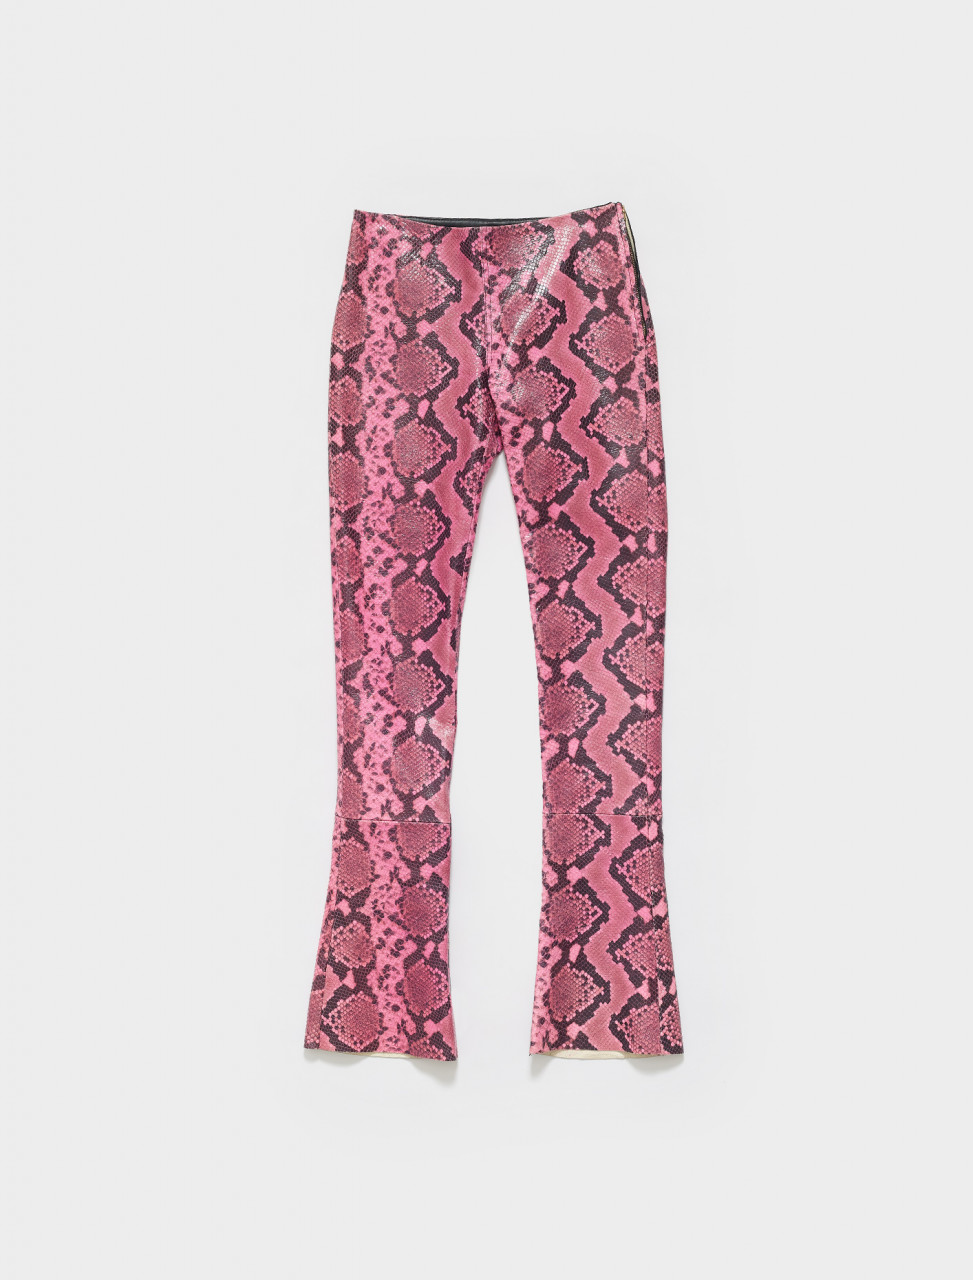 SS19TR0116LTS MARQUES ALMEIDA BOOTCUT TROUSERS PINK